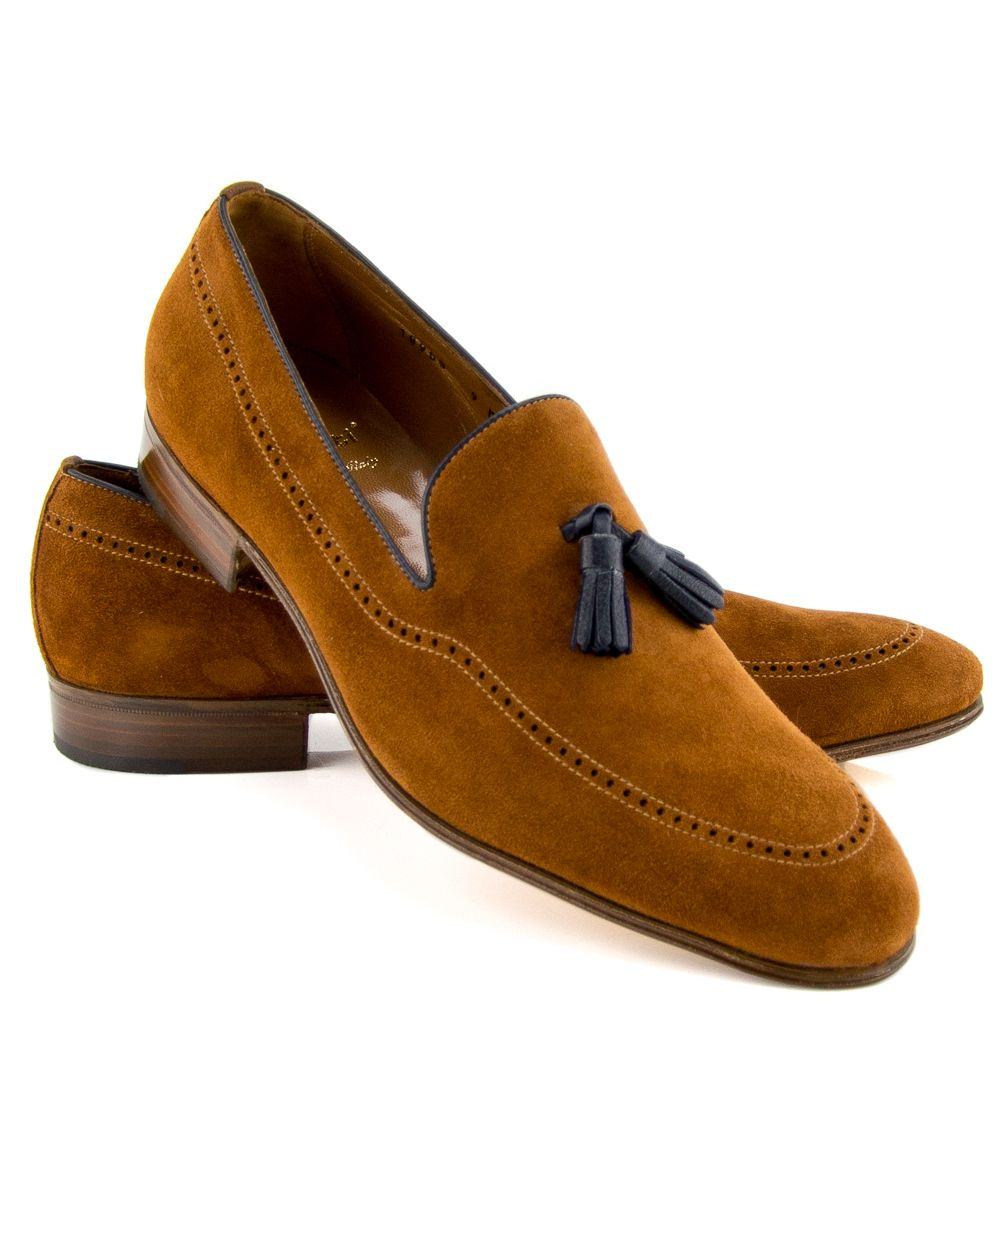 442253caf6f Gravati Cognac Suede Leather Tassel Loafer